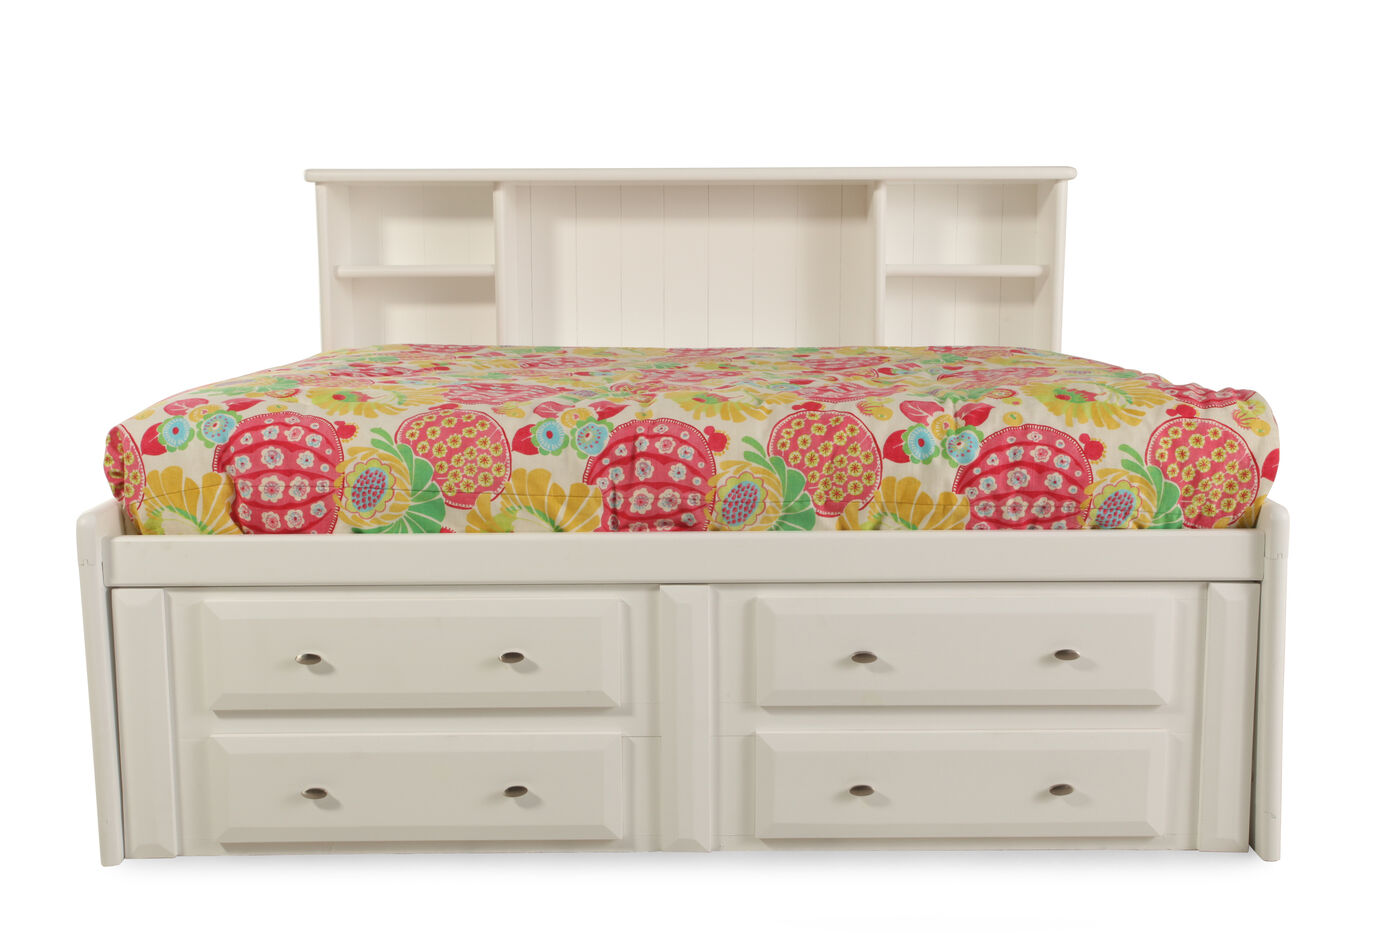 Solid Pine Youth Bookcase Bed With Storage Drawers In